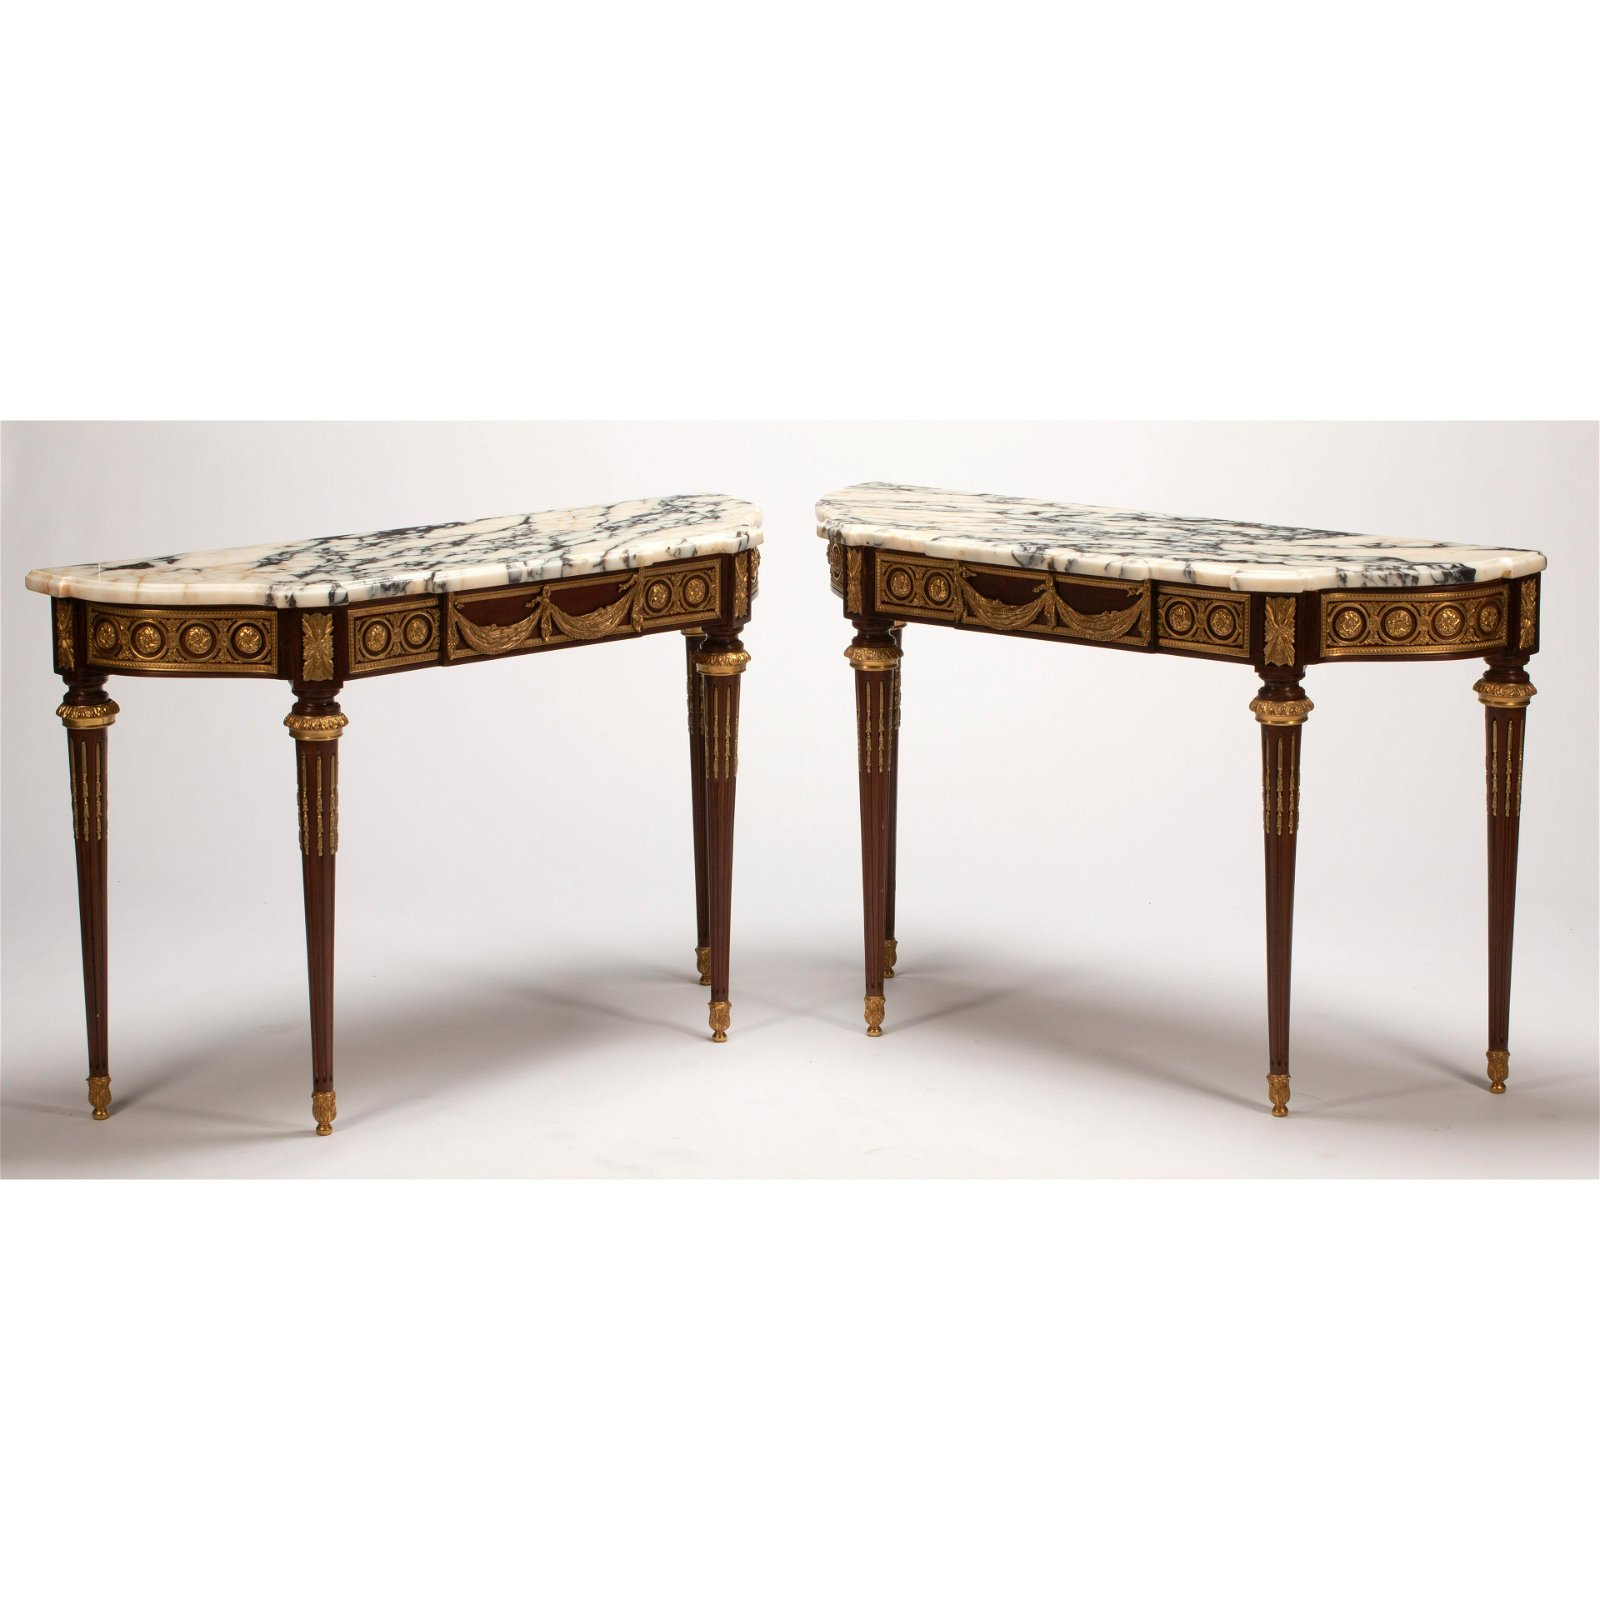 French Louis XV Style Dore Bronze Mounted Marble Top